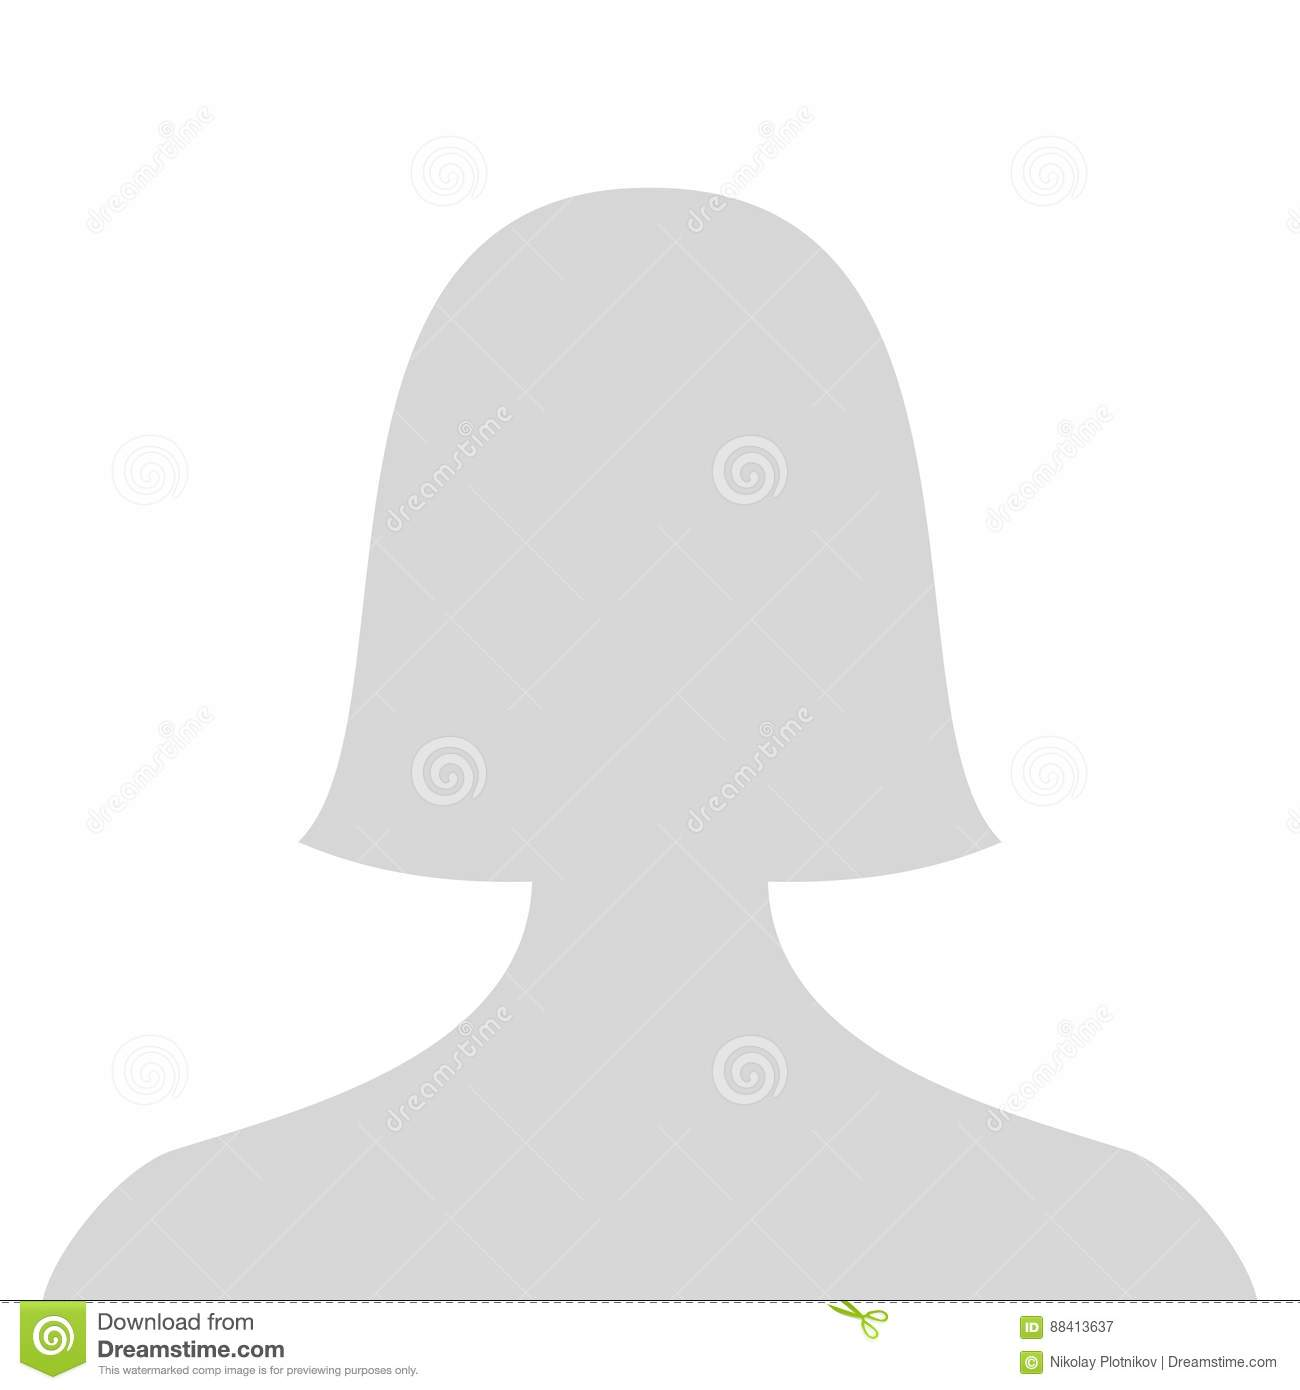 Female Silhouette Head Grey.